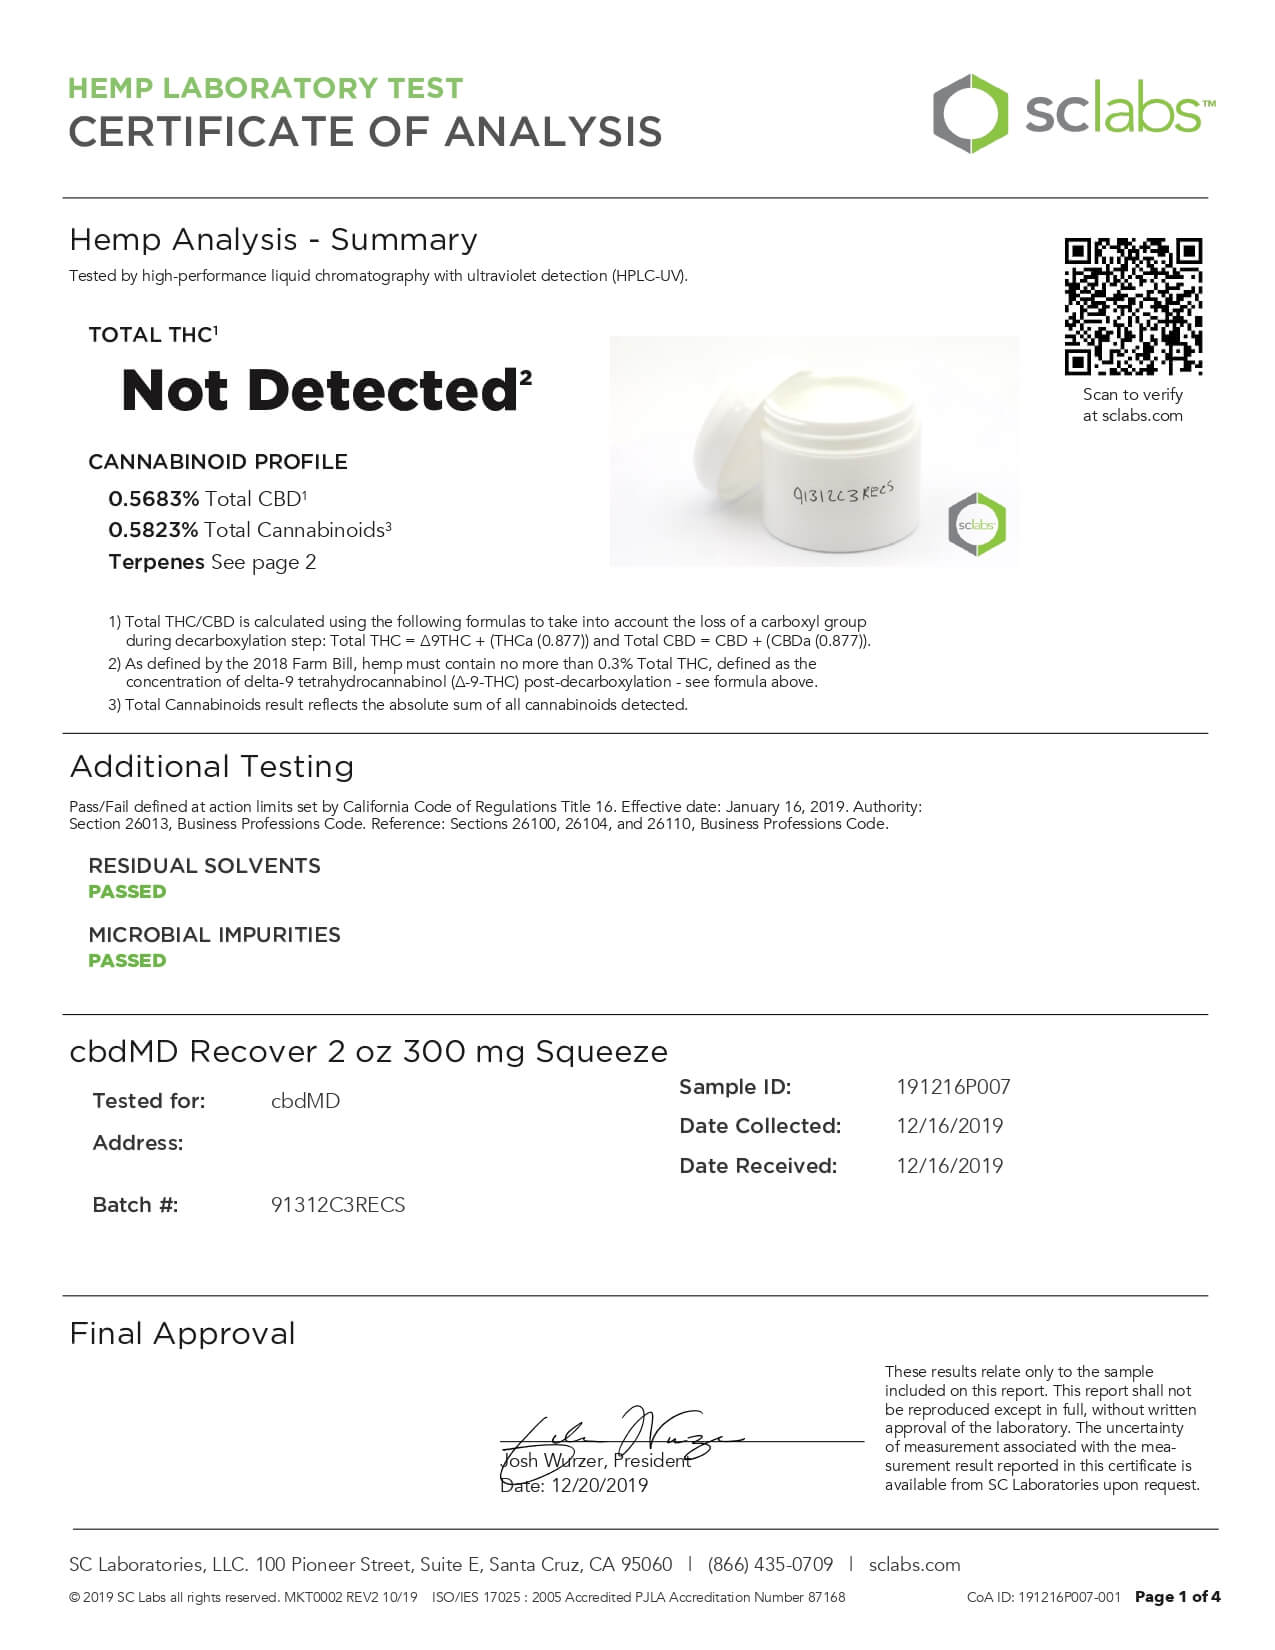 cbdMD CBD Topical Recover Inflammation Cream 2oz Squeeze 300mg Lab Report